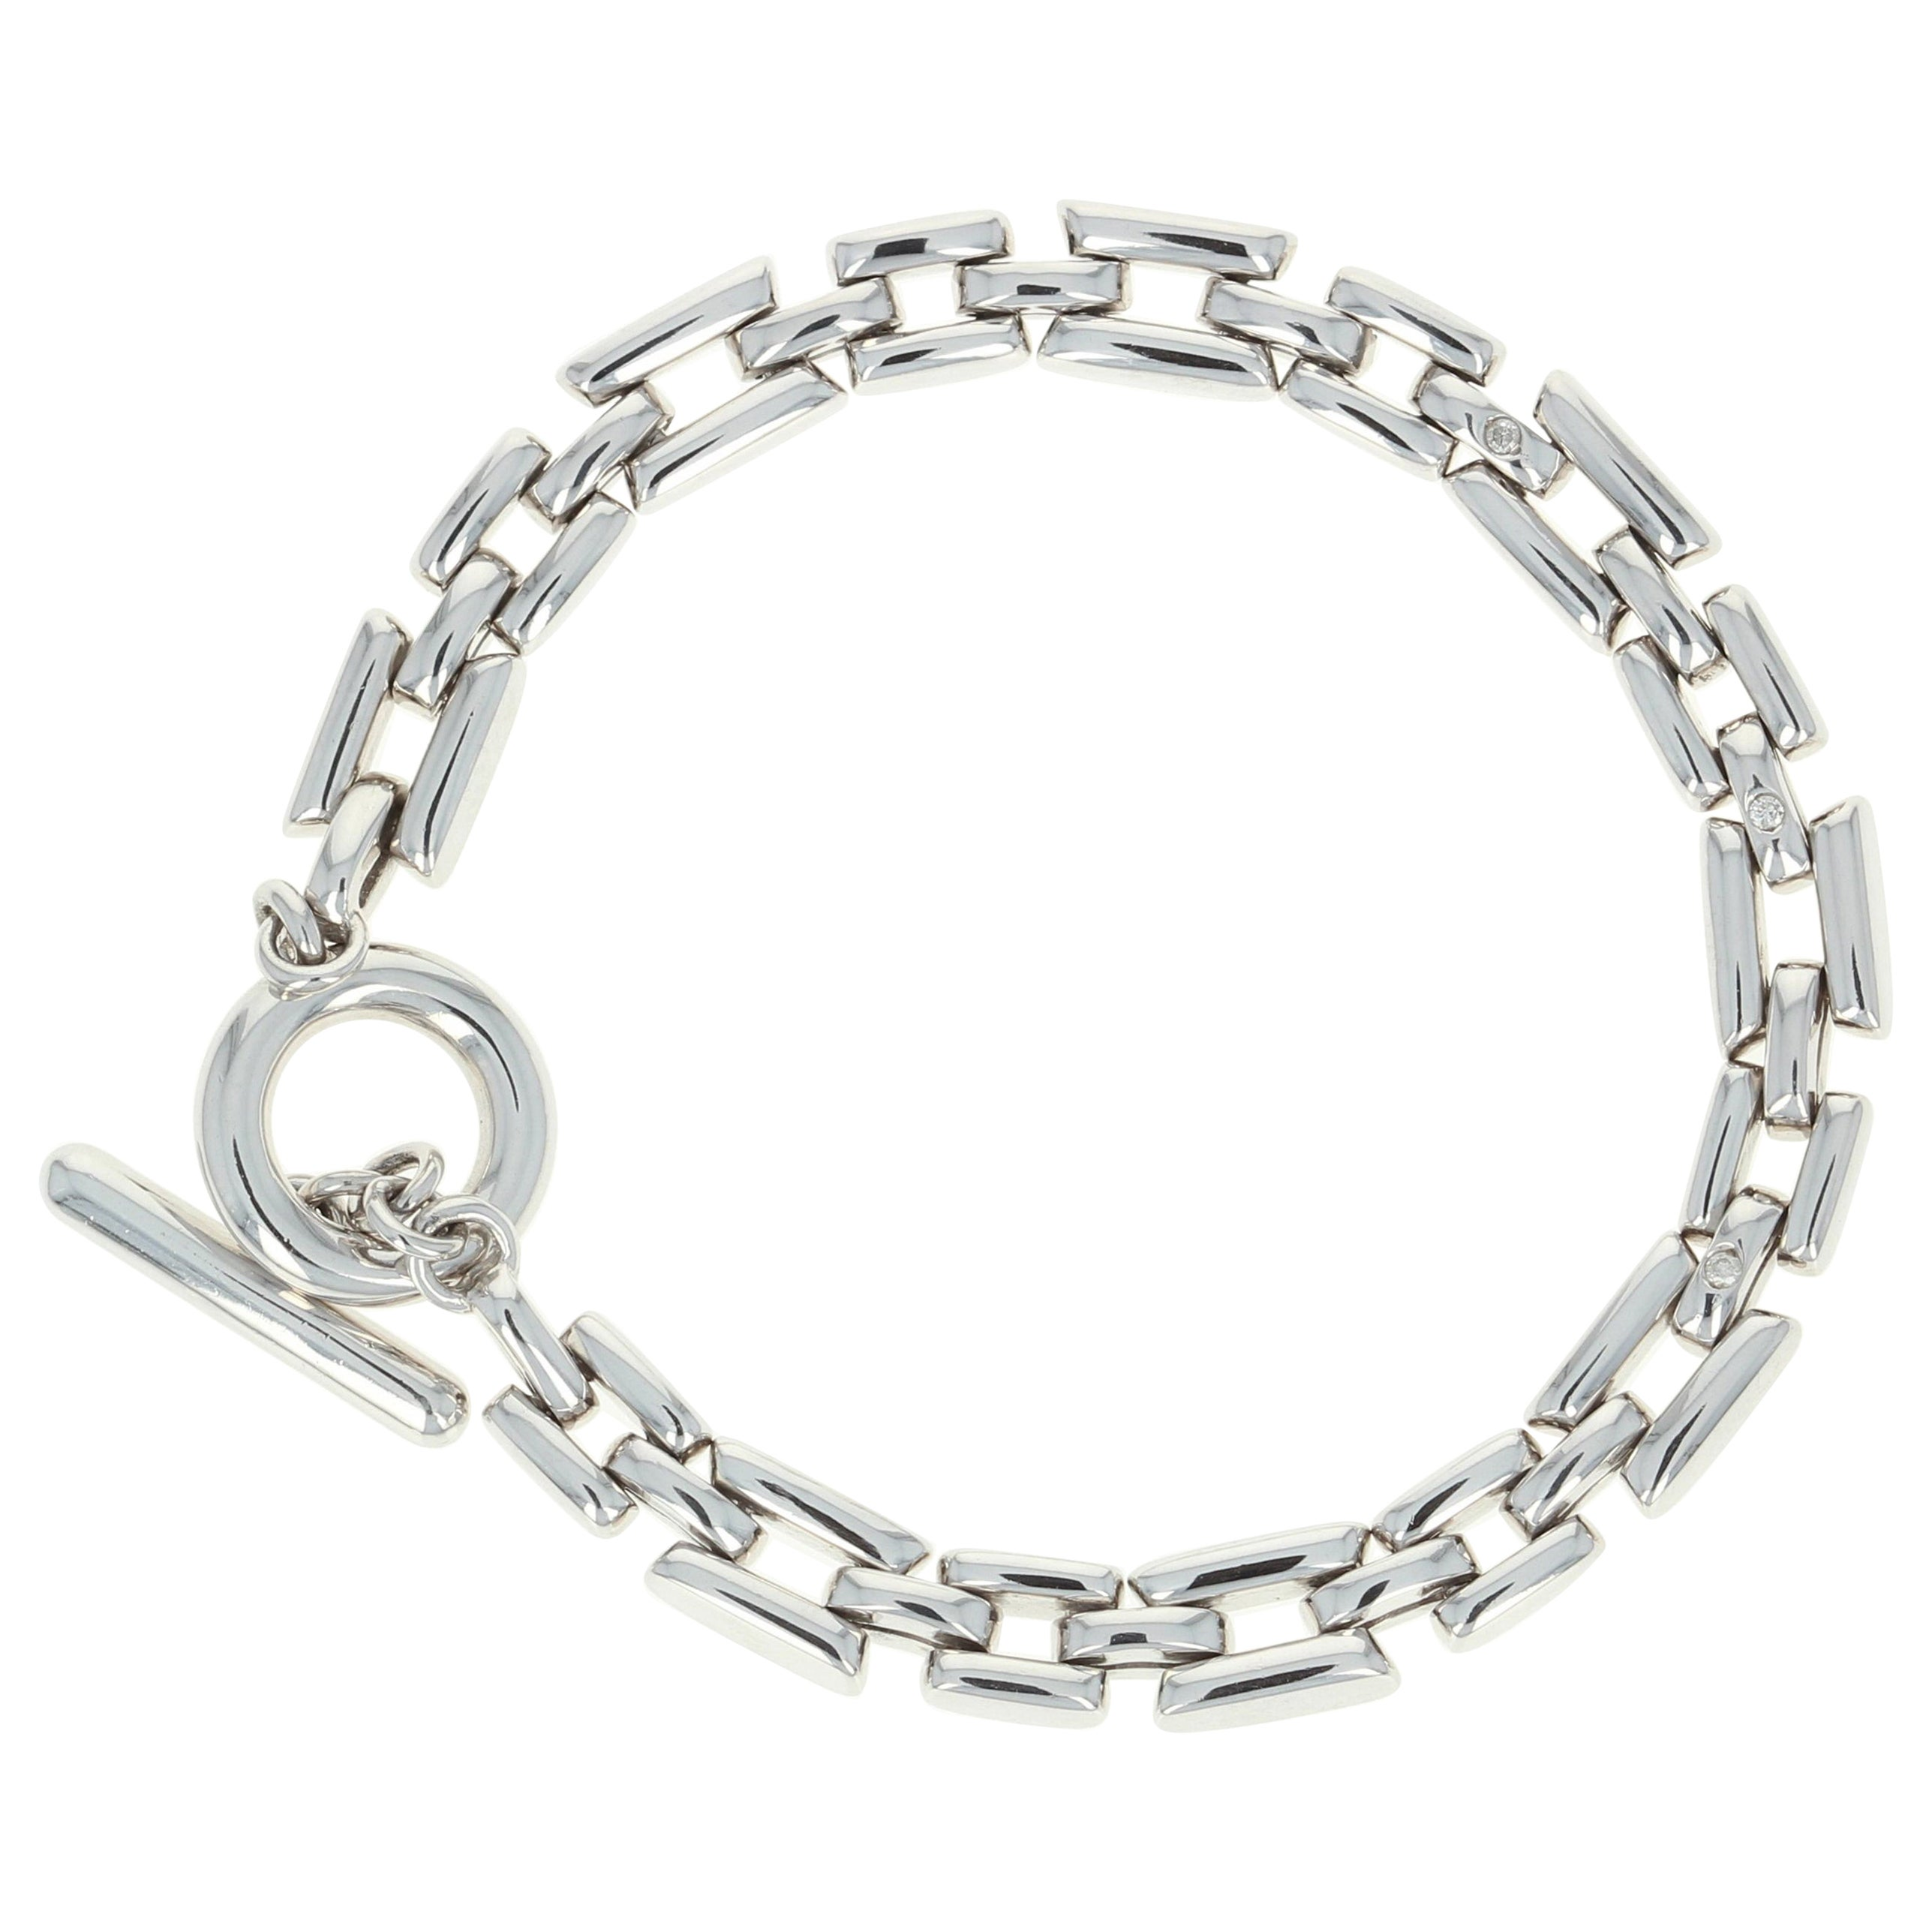 New Round Cut Diamond-Accented Link Bracelet, Silver Toggle Clasp